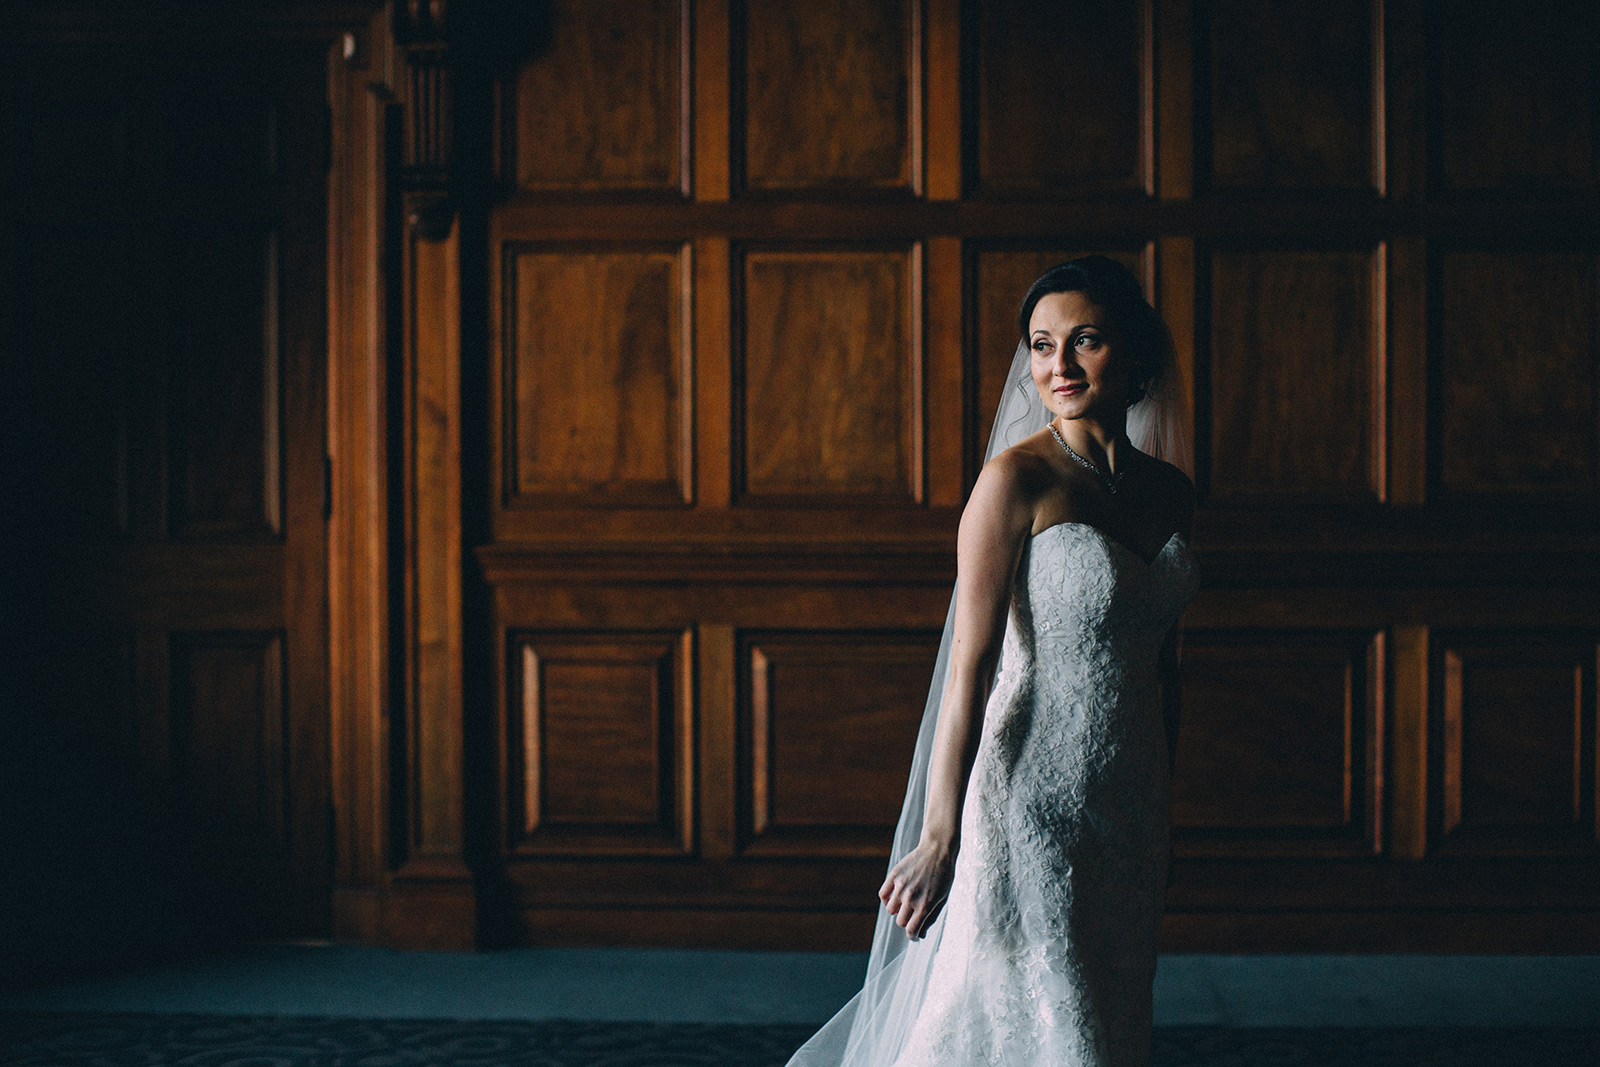 One-King-West-Toronto-wedding-photography_Sam-Wong-of-Visual-Cravings_KnR-20